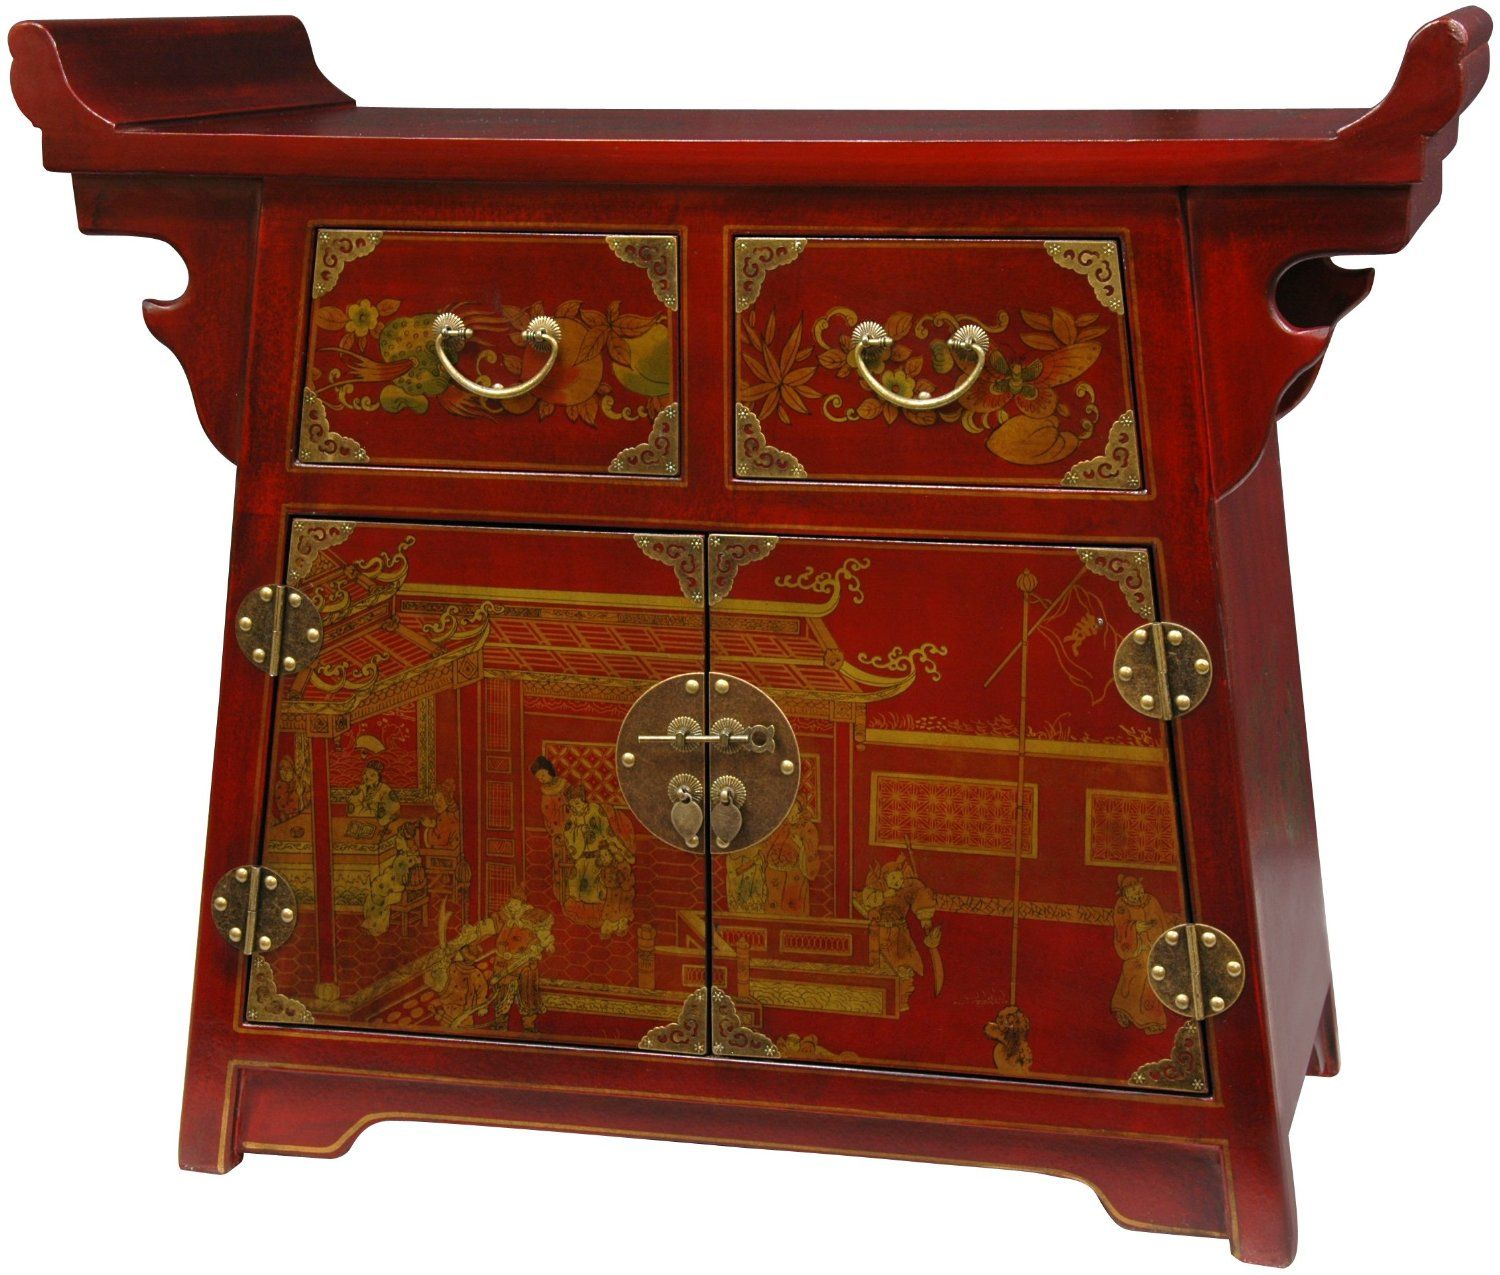 Exceptional Fine Asian Furniture 37 Inch Red Lacquer Village Life Altar Cabinet